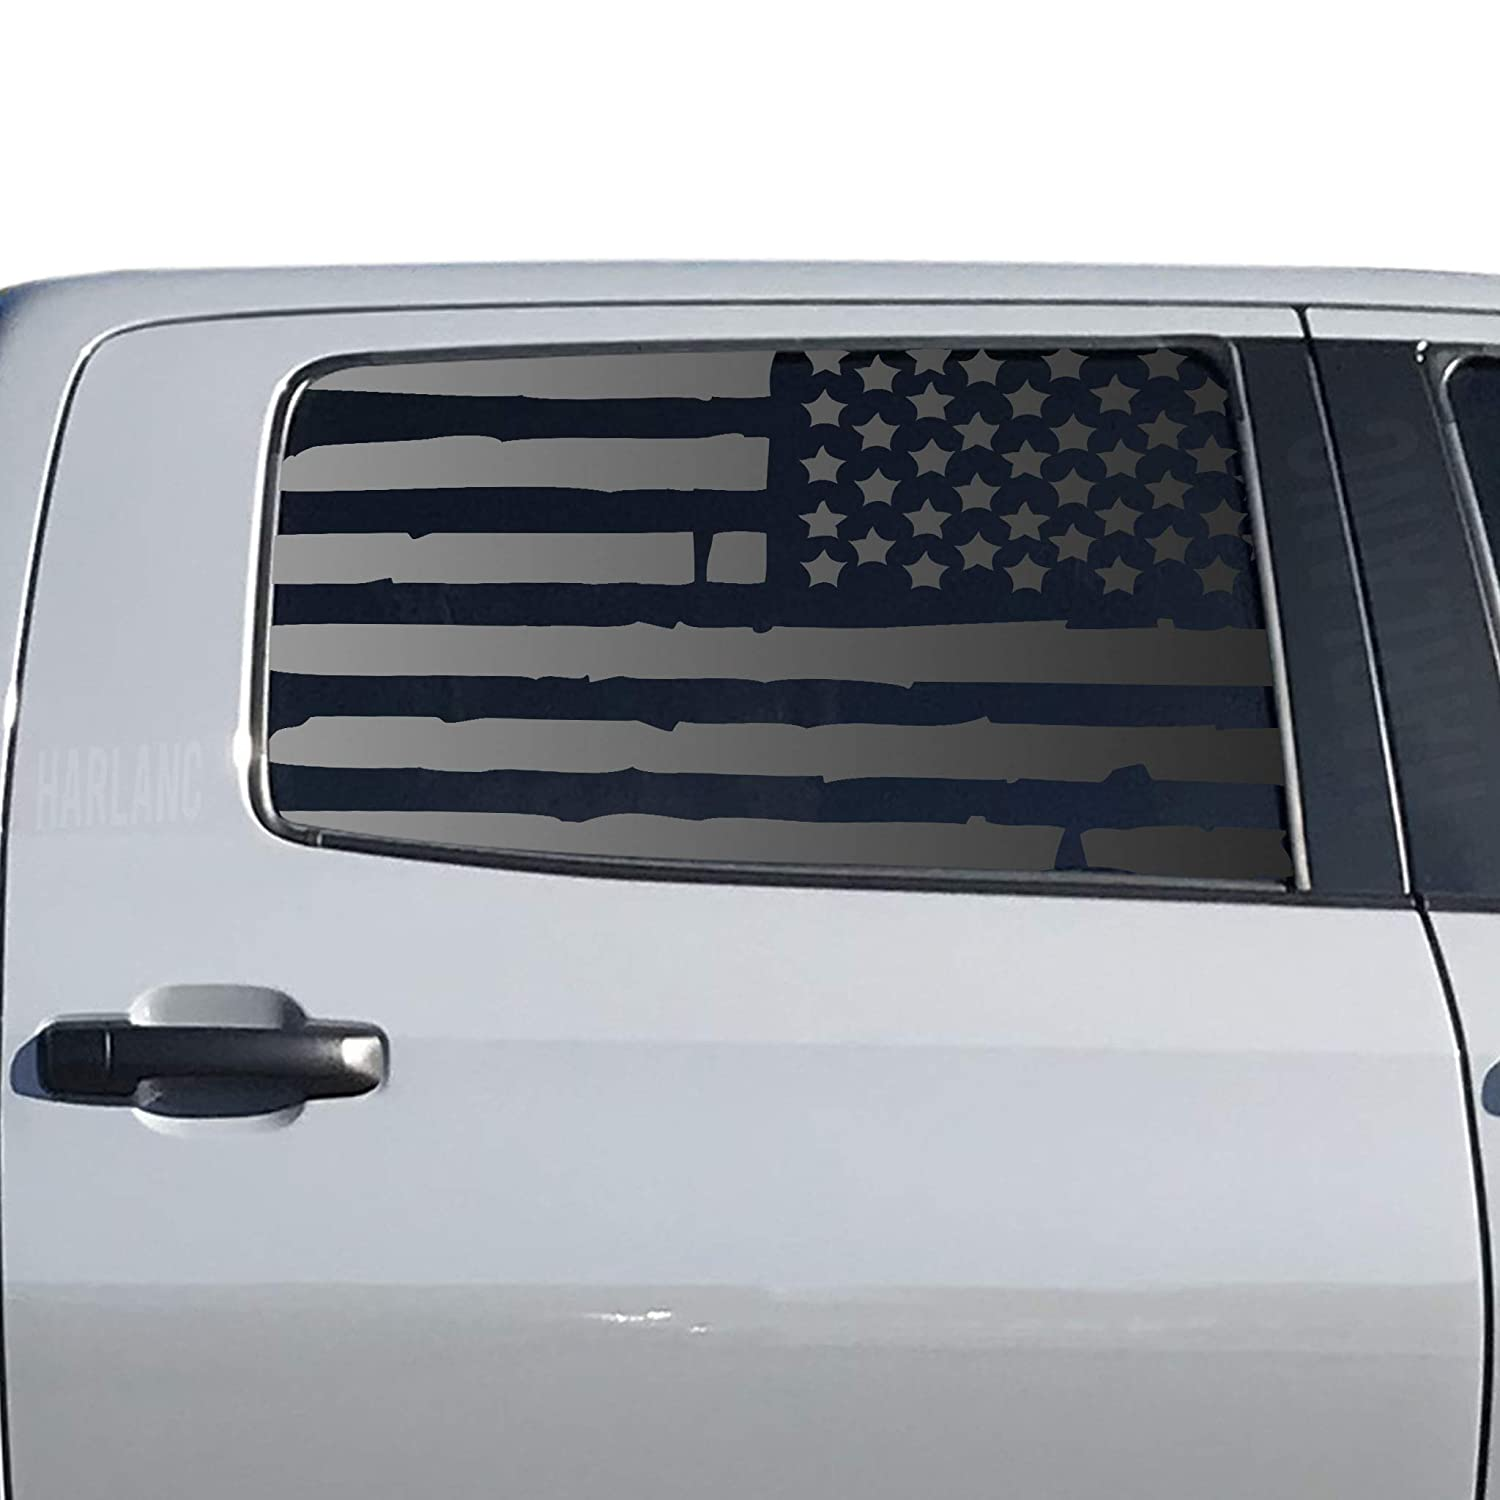 Distressed USA Flag Decals For Max 89% OFF 2014-2020 Tundra Toyota Max 62% OFF Rear Do -